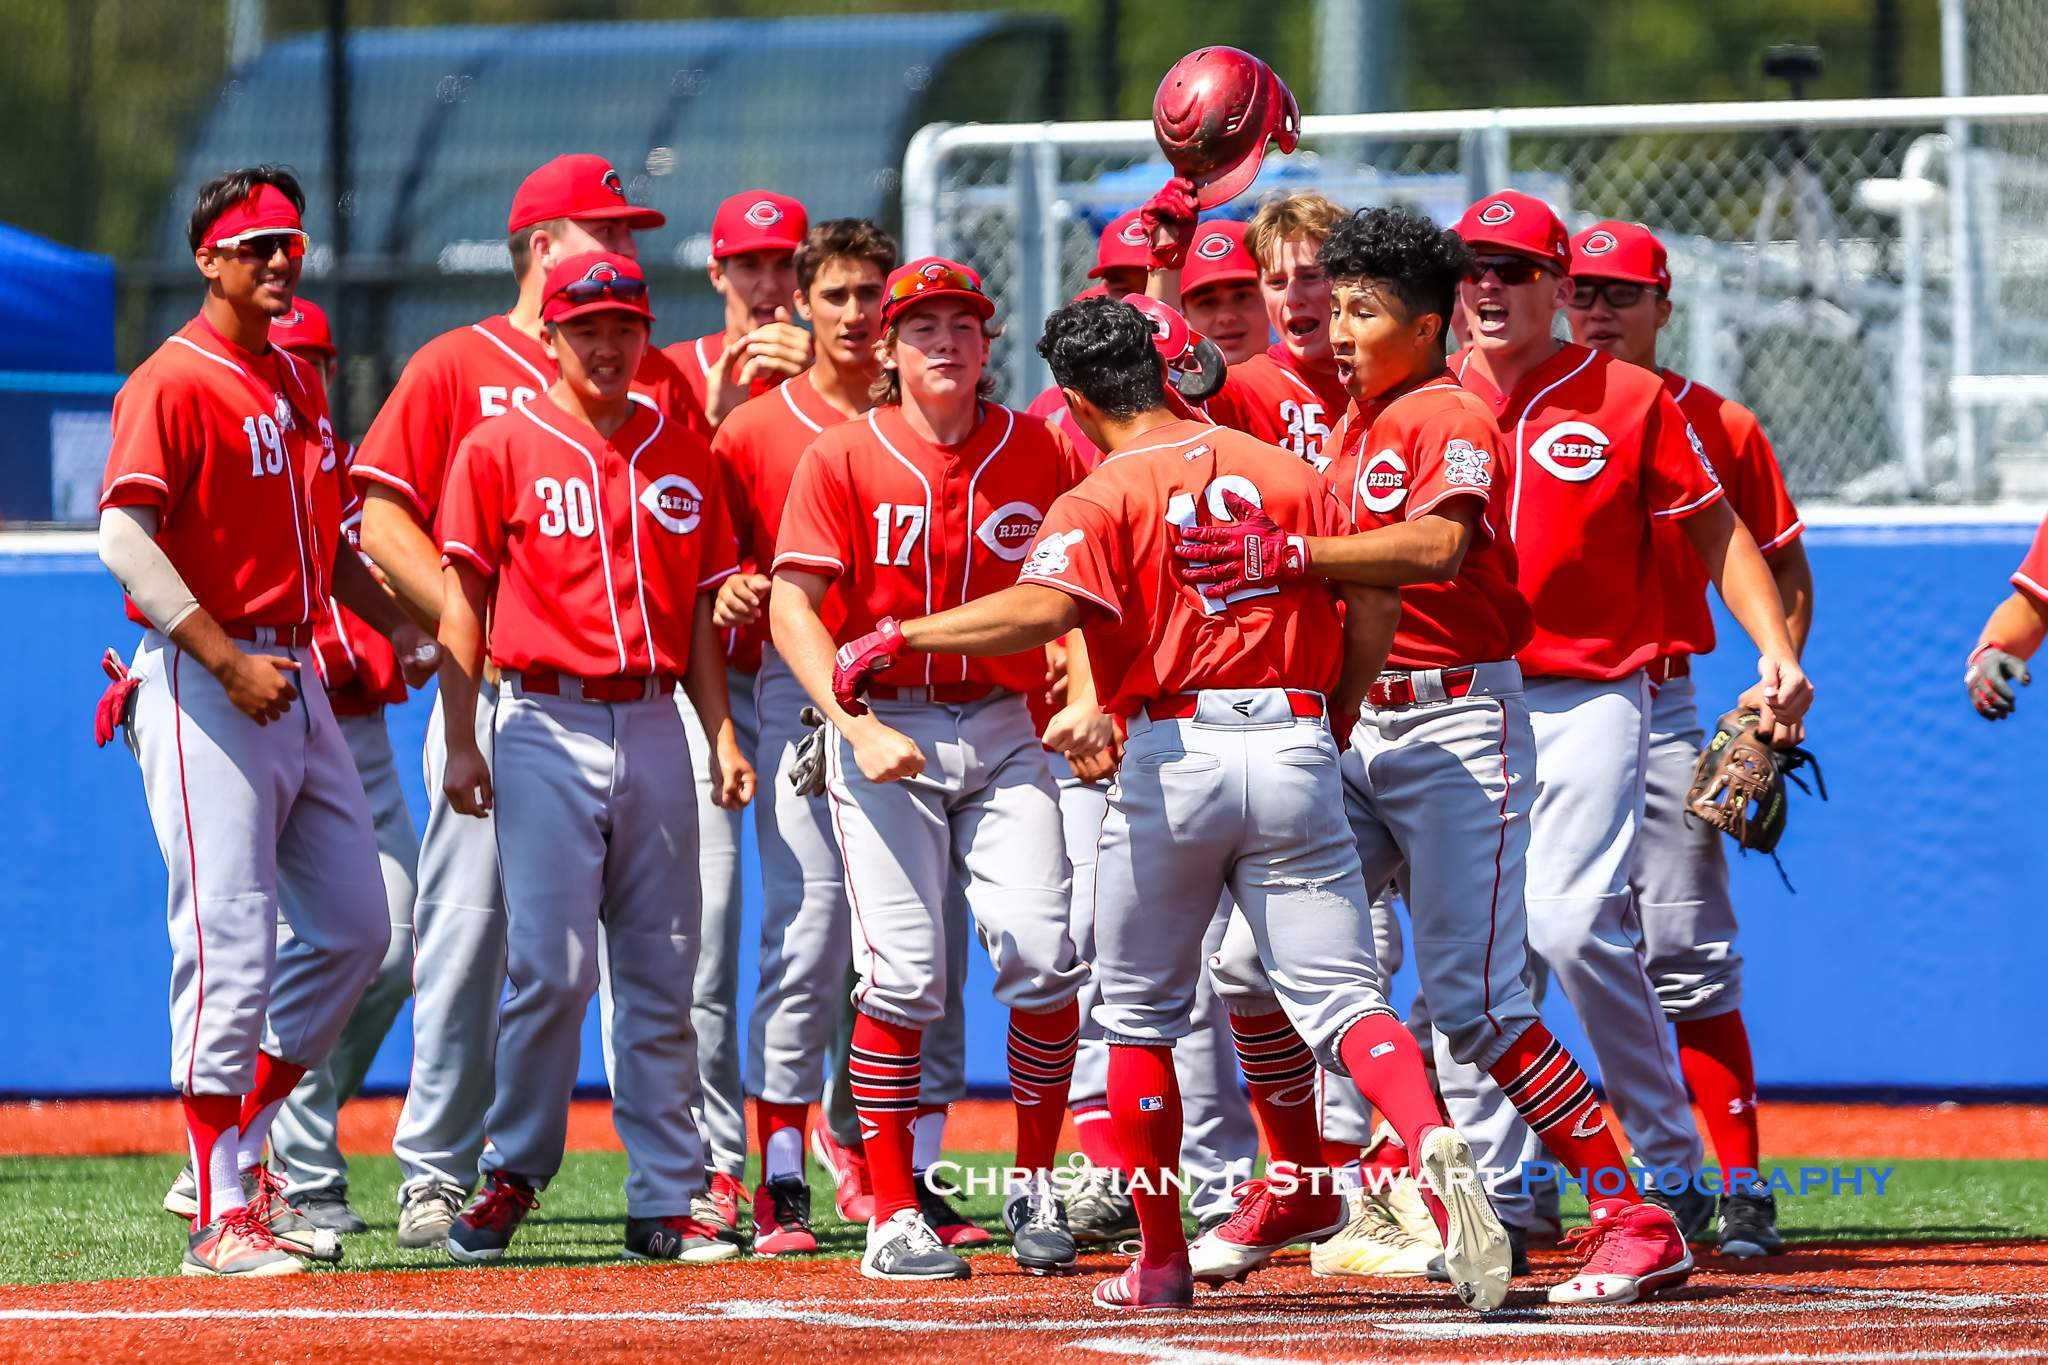 Coquitlam's Luciano Letteri (12) is mobbed by his teammates after his two-run home run tied the game in the top of the fifth inning (Photo: Christian J. Stewart)